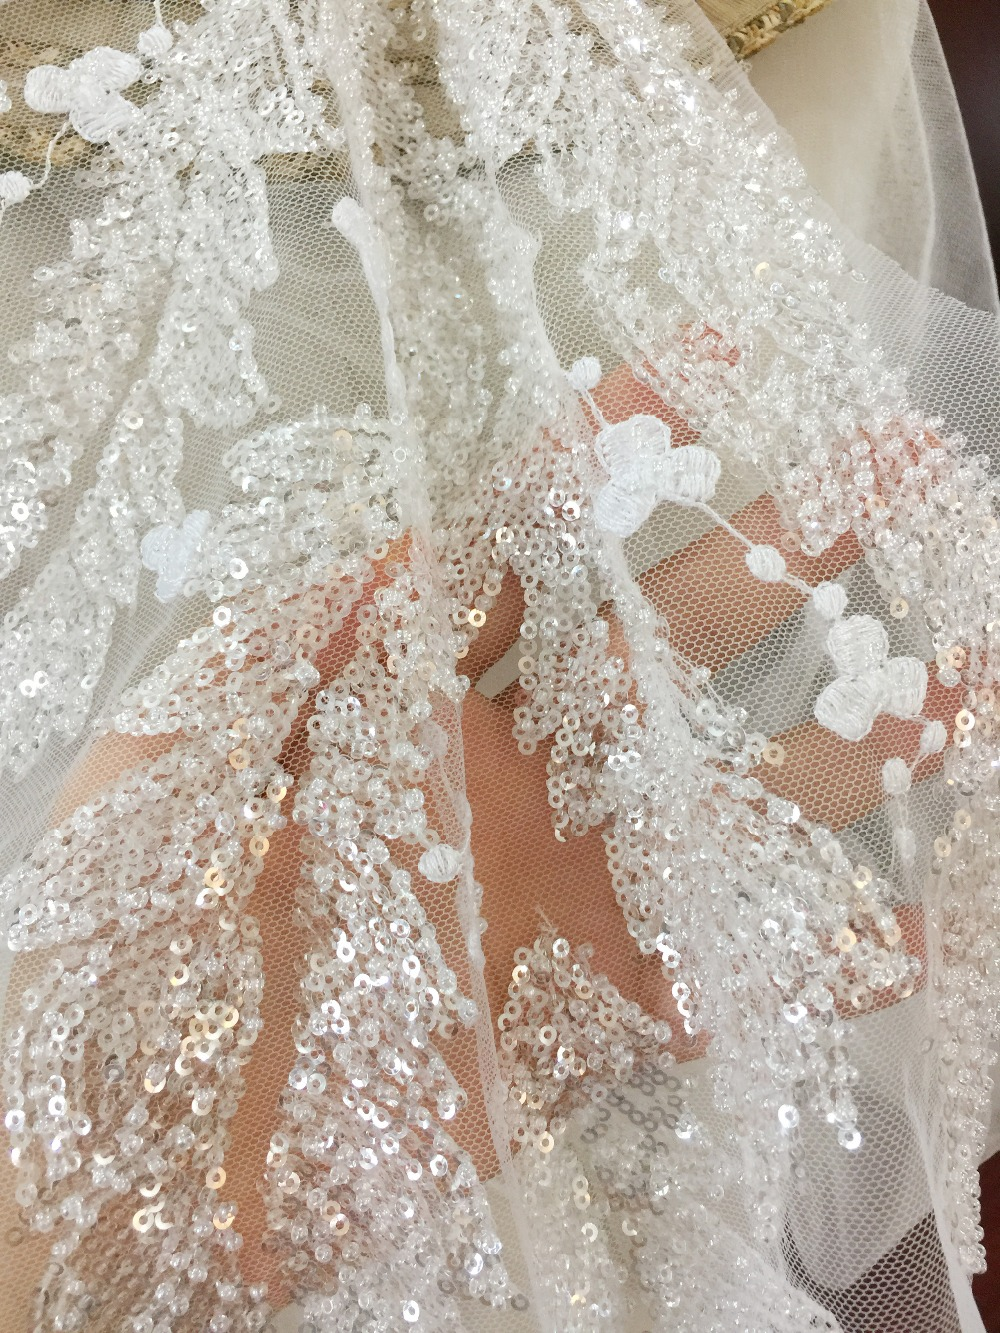 2pcs/Lot Pearl Beaded Bridal Leaf Lace Applique in Pink Purple Off White, Flower Applique for Dance Costumes women cloth dress